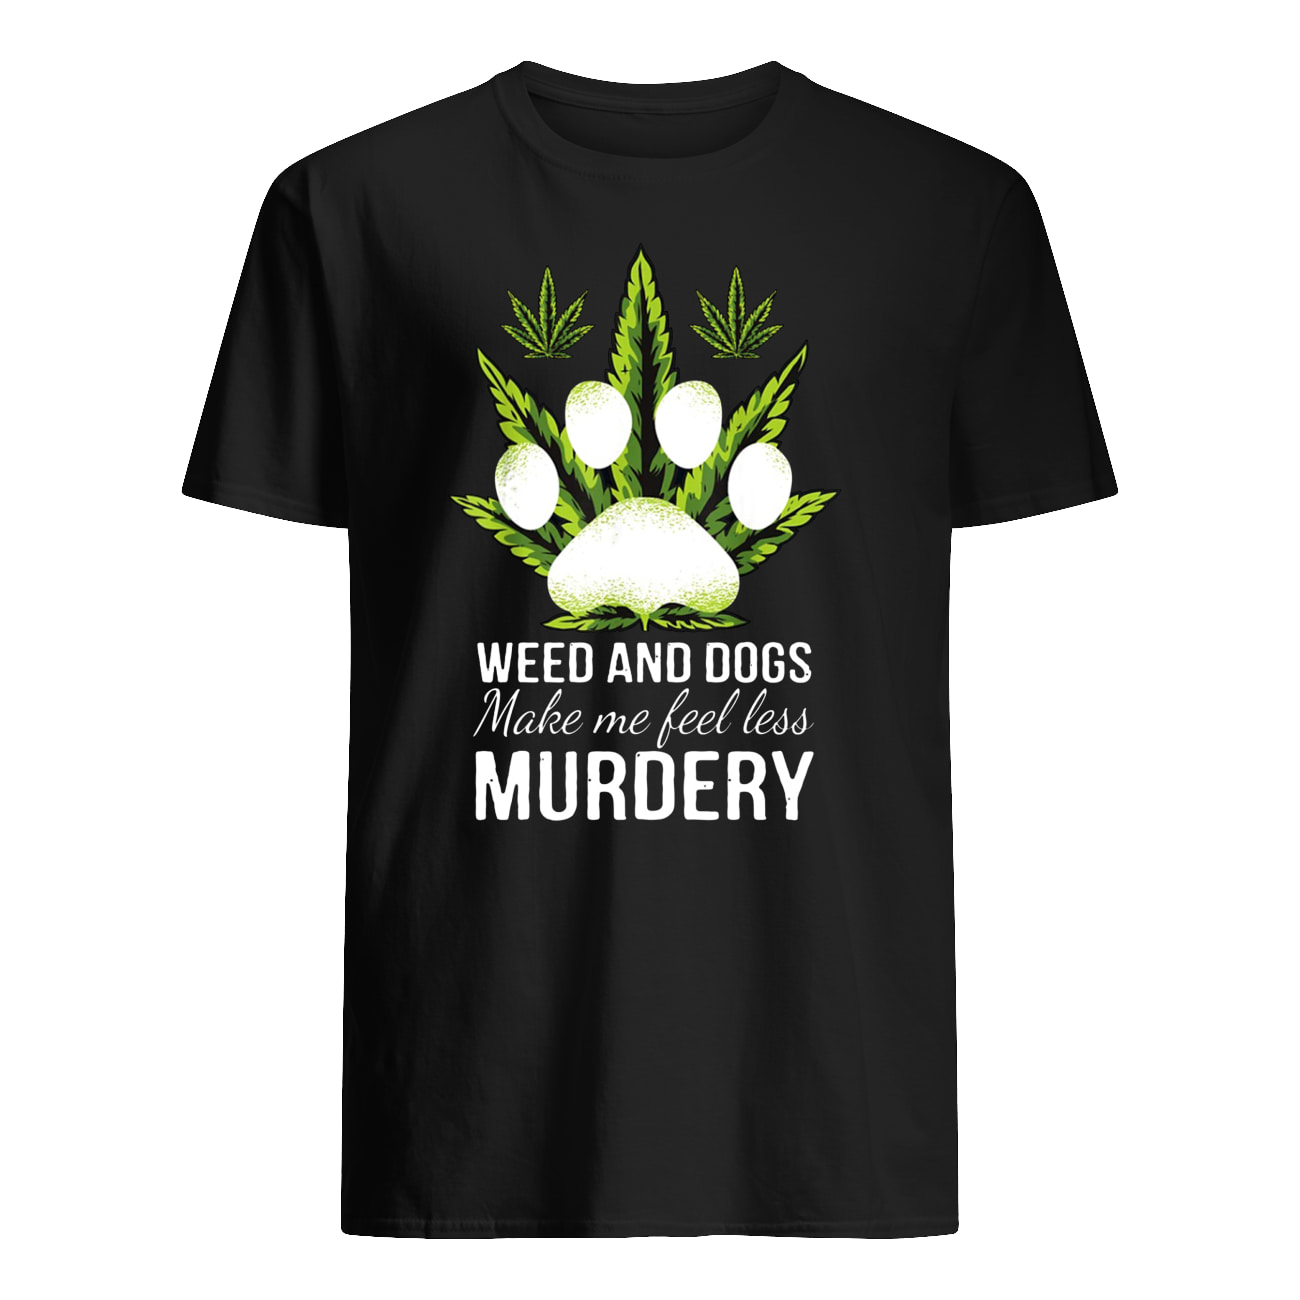 Weed and dogs make me feel less murdery mens shirt